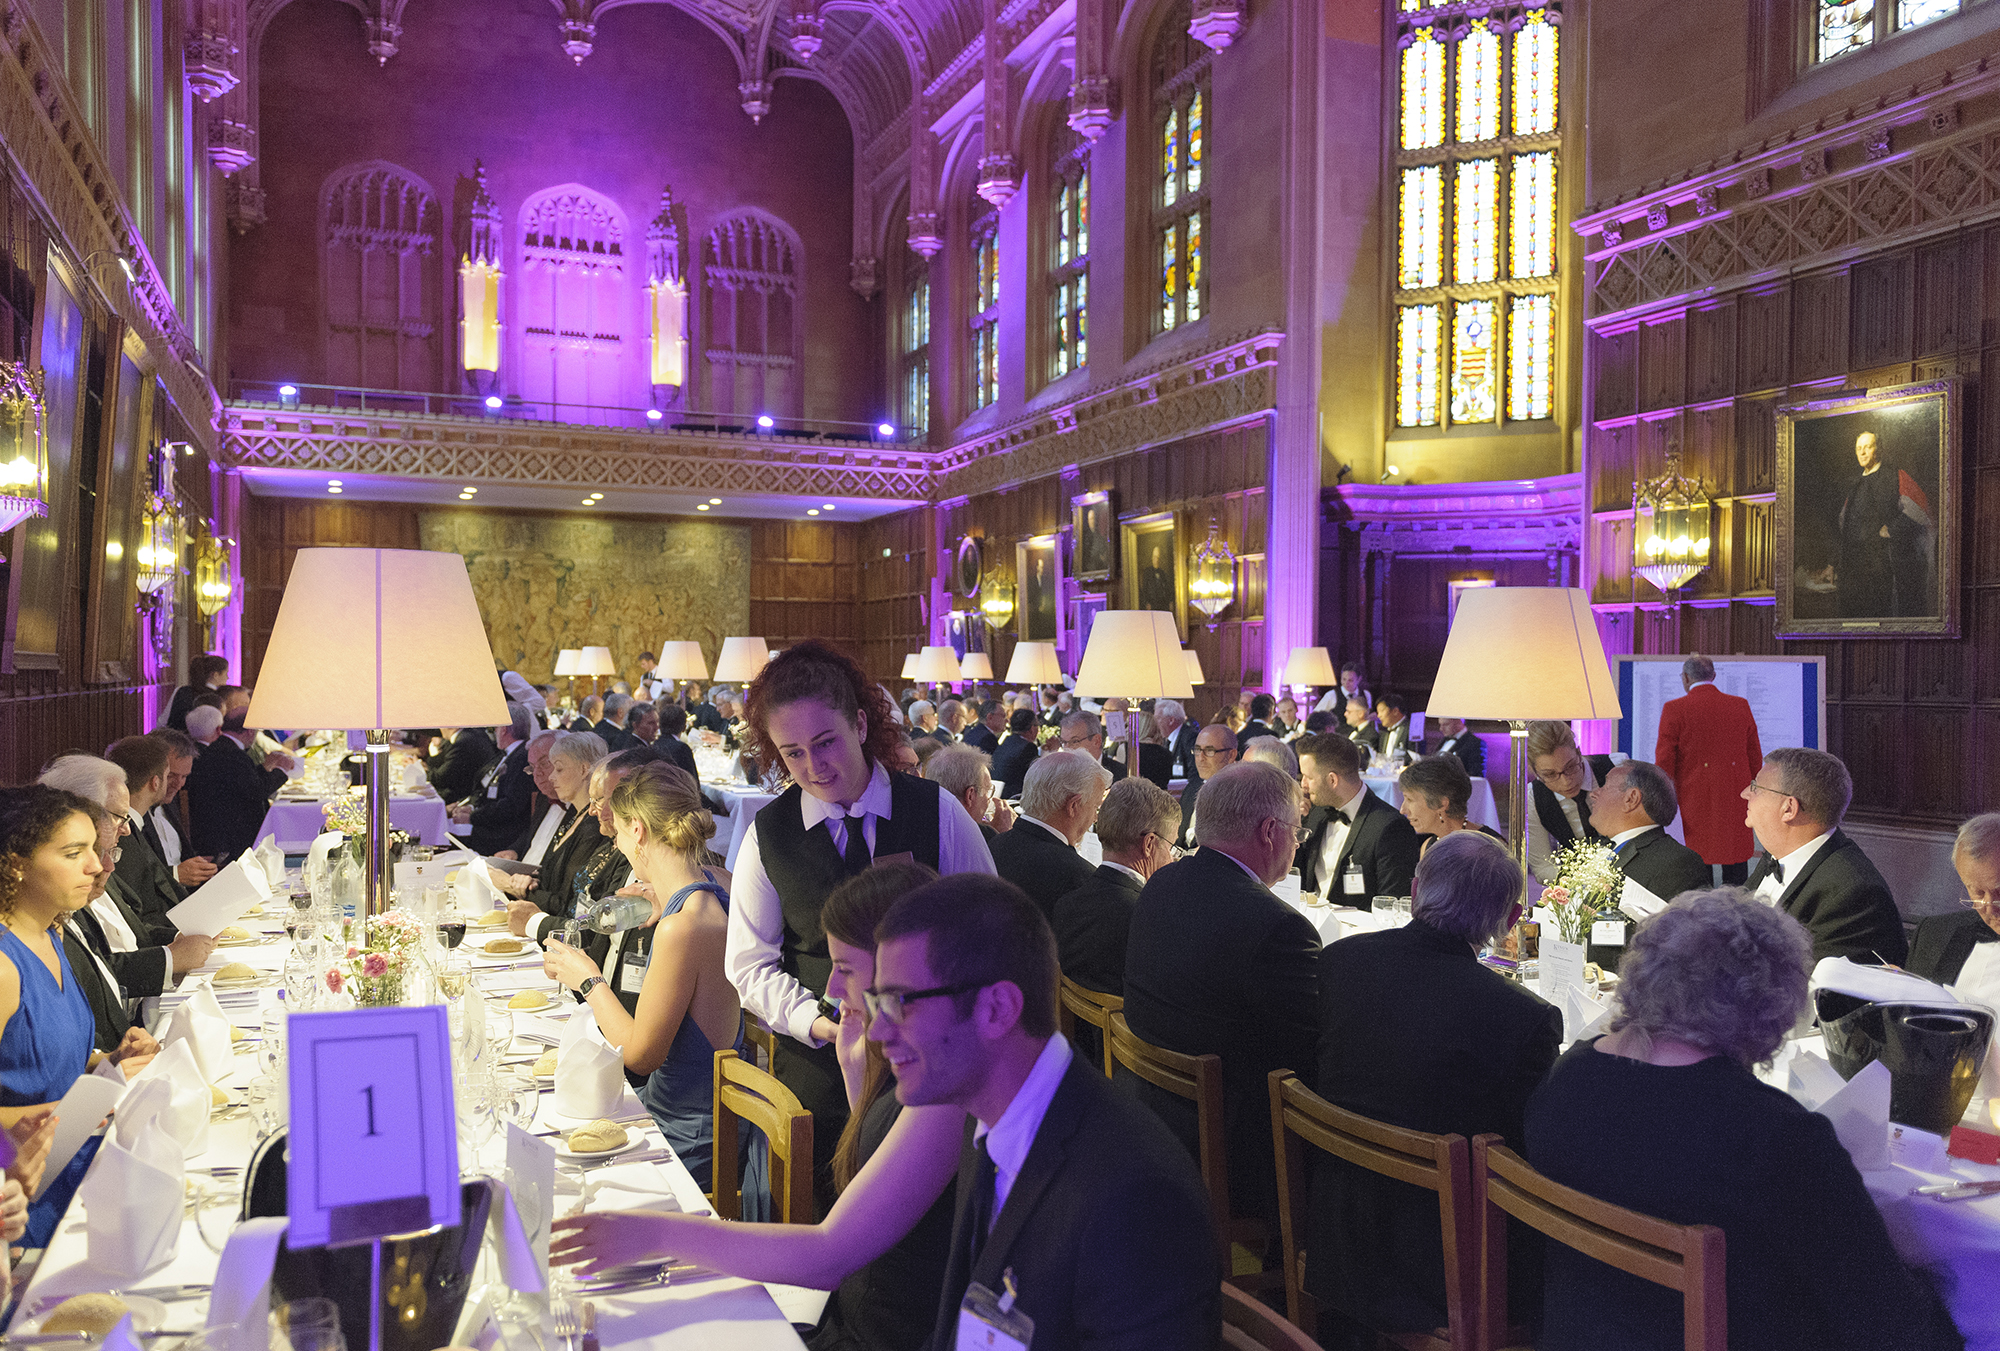 Guests enjoy dinner at King's College, Cambridge during The Welding Institute Annual Awards and Dinner 2016